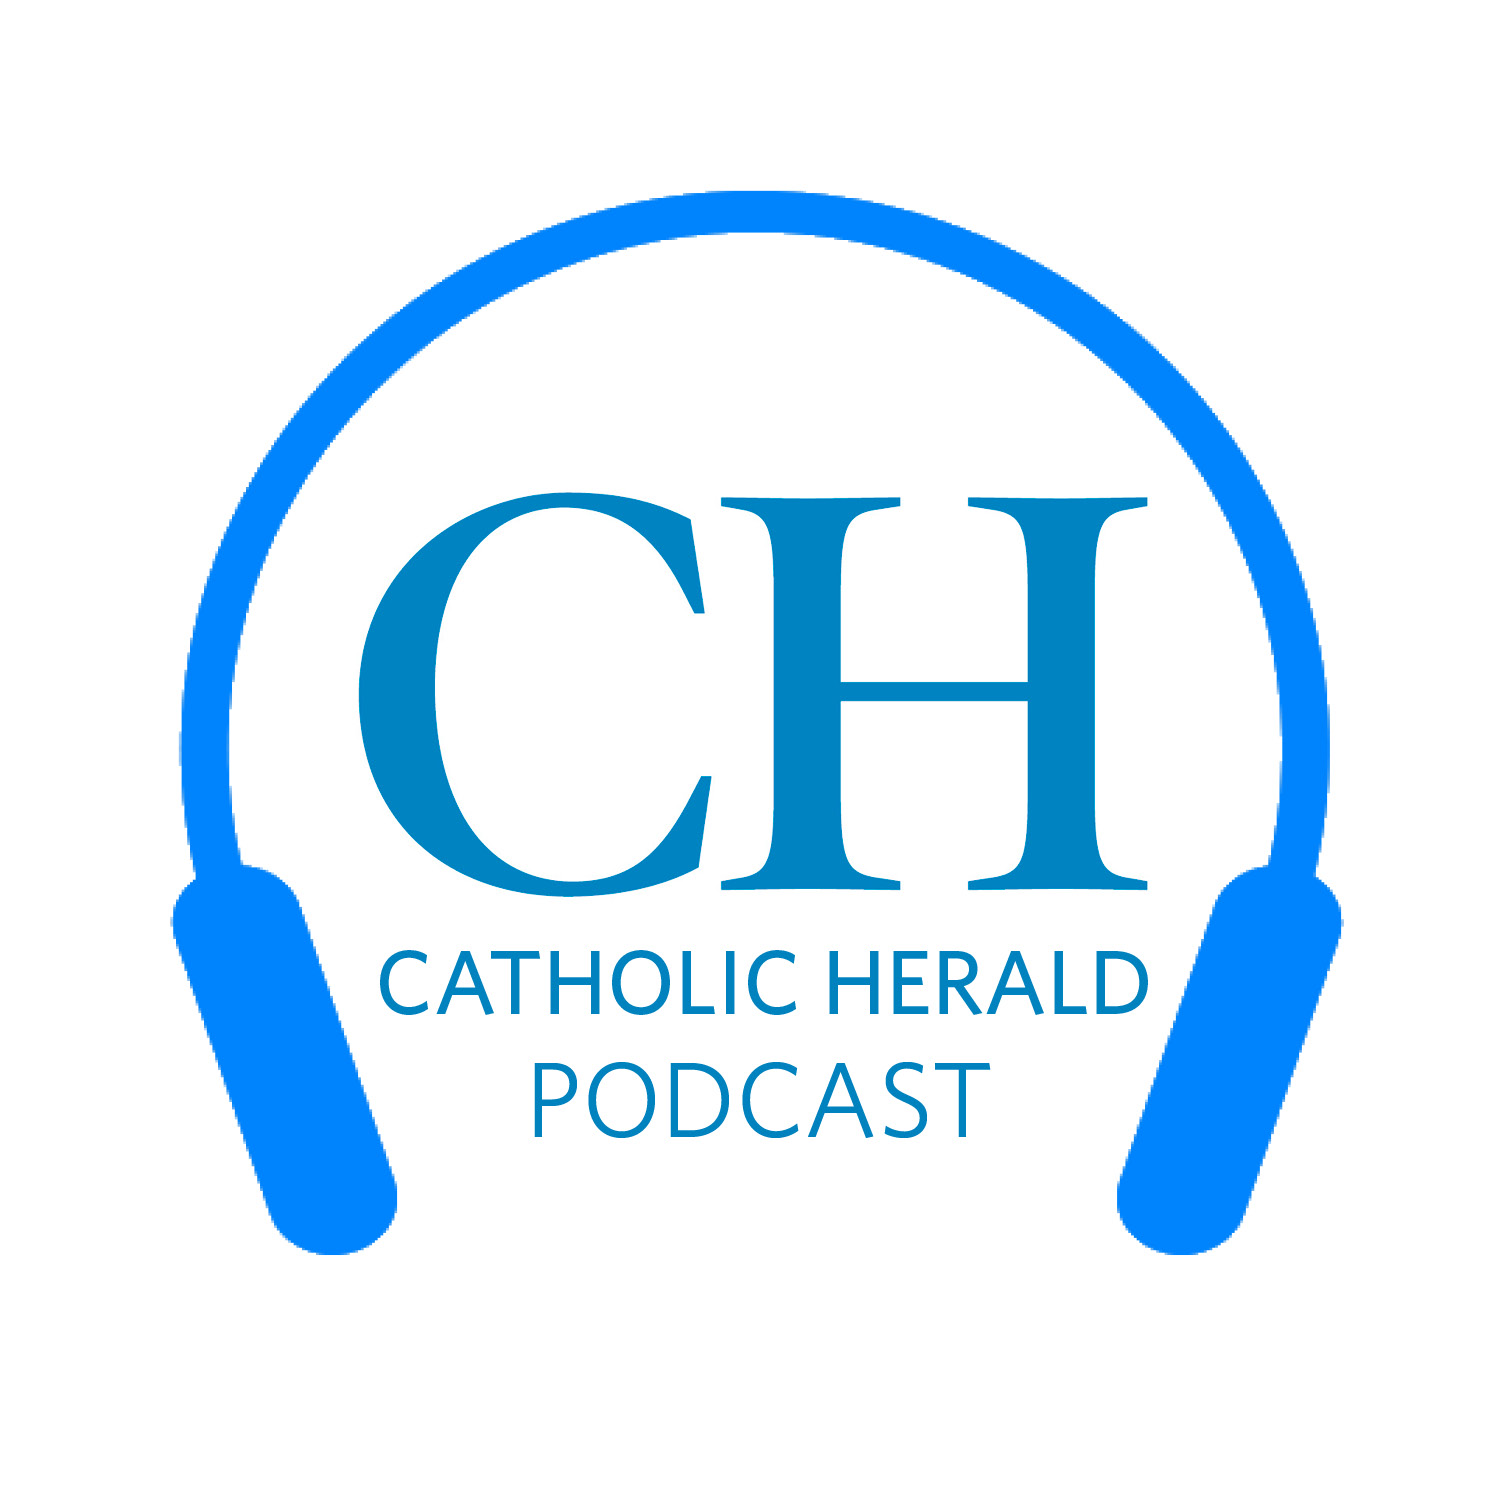 CatholicHerold.com